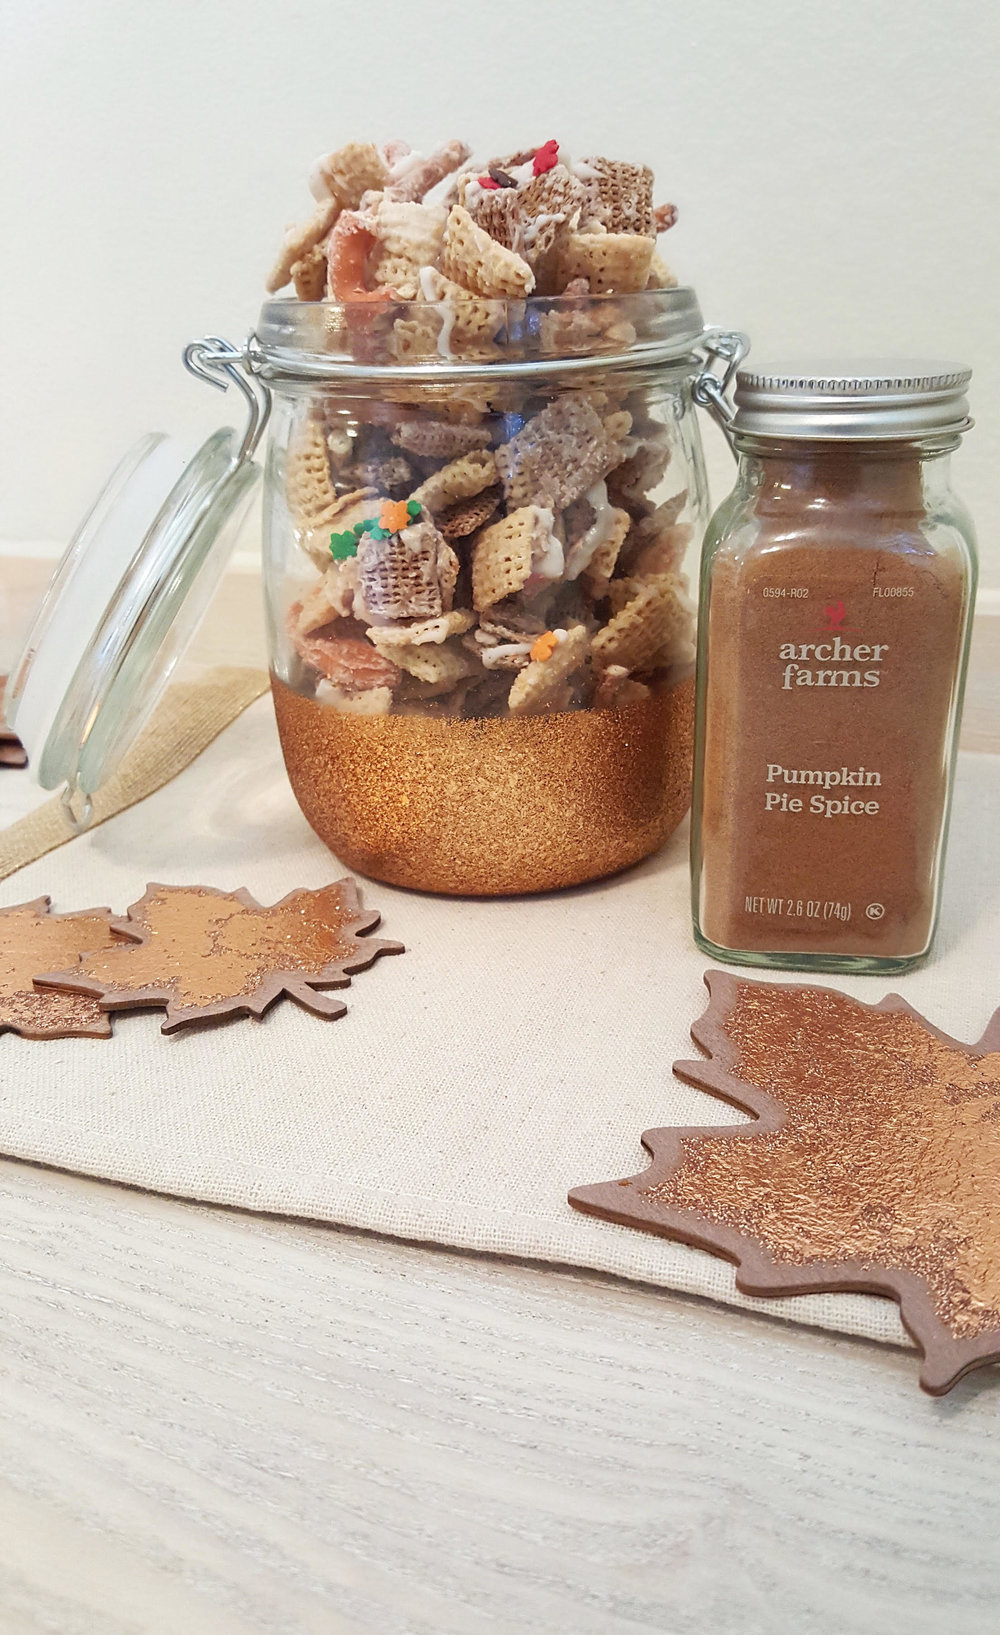 archer farms pumpkin pie spice